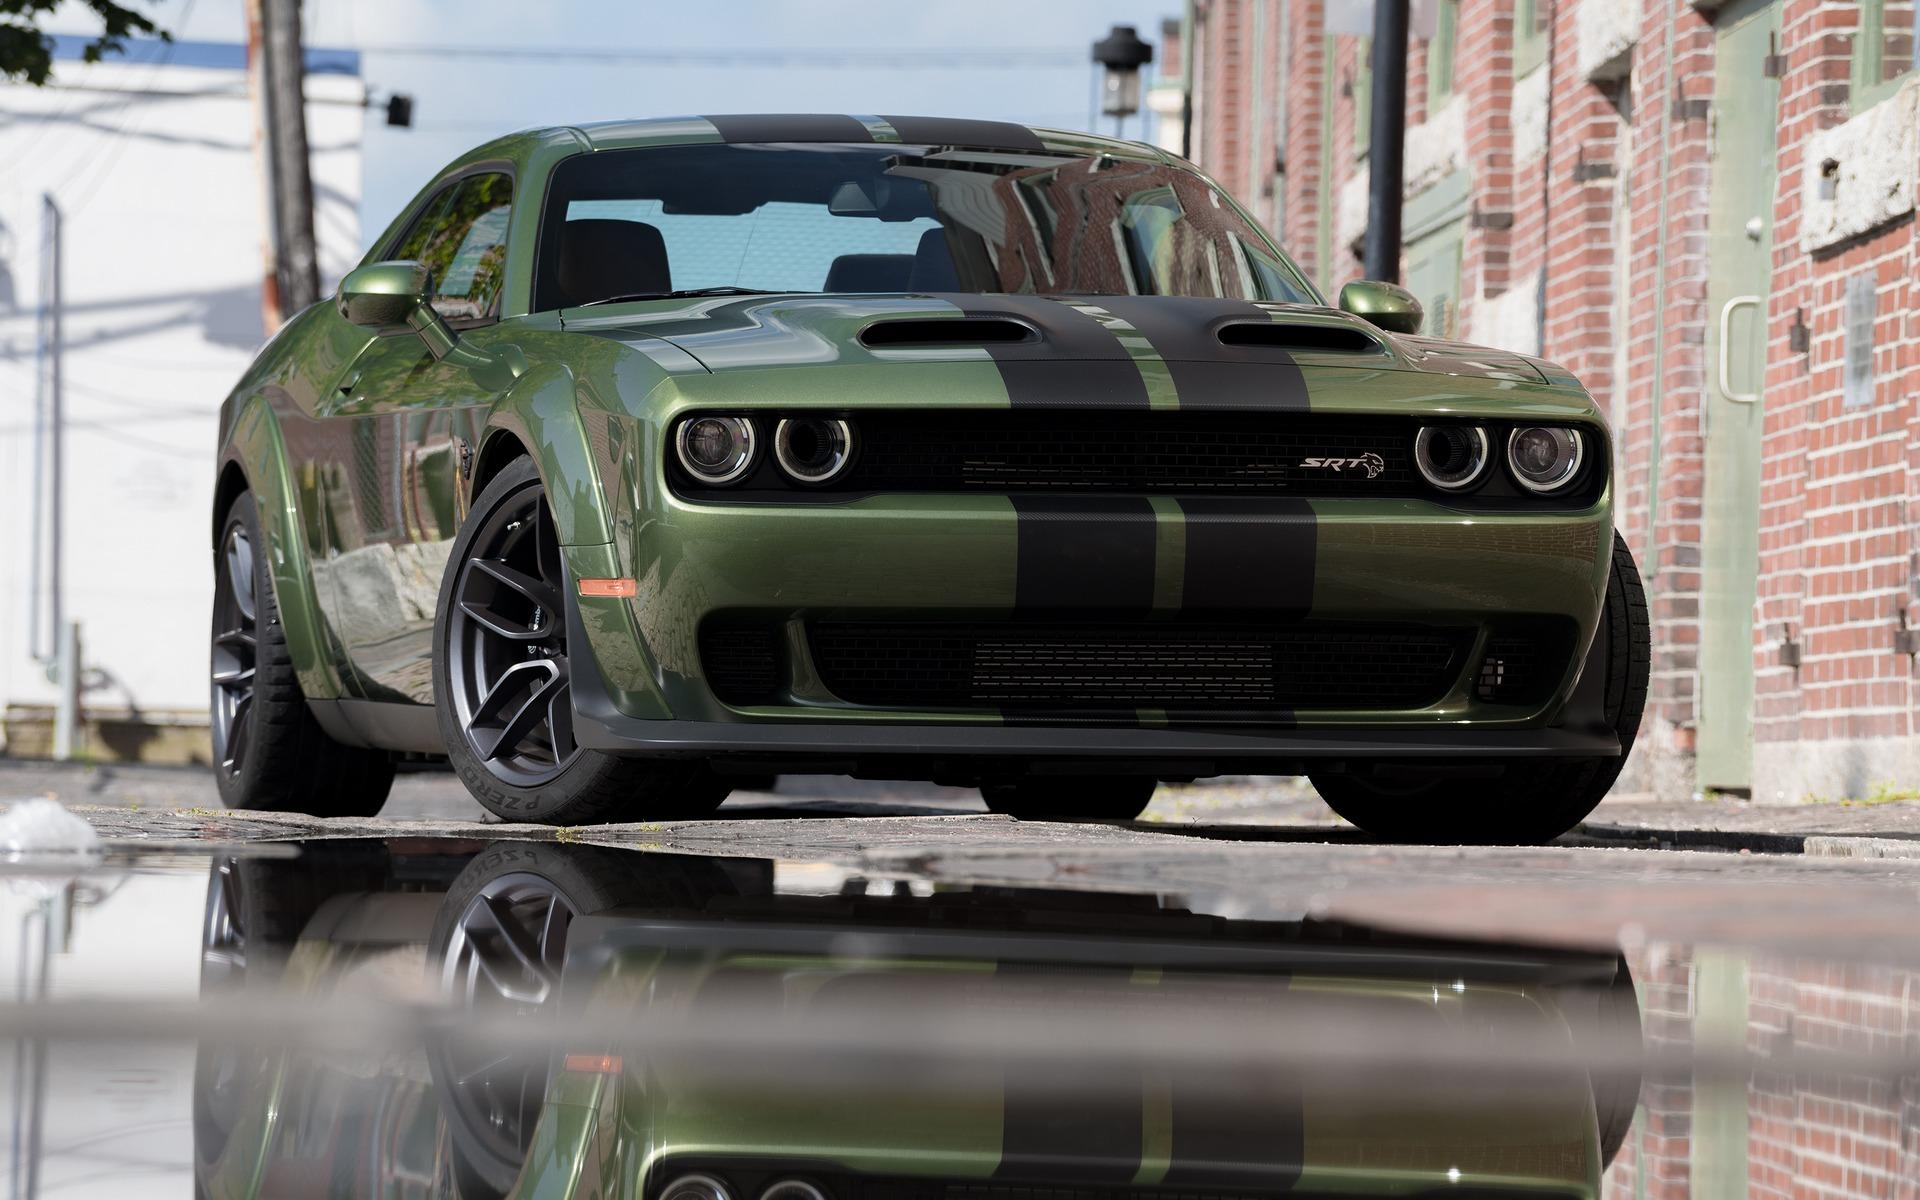 2019 Dodge Challenger SRT Hellcat Redeye Widebody: Full Blast on the